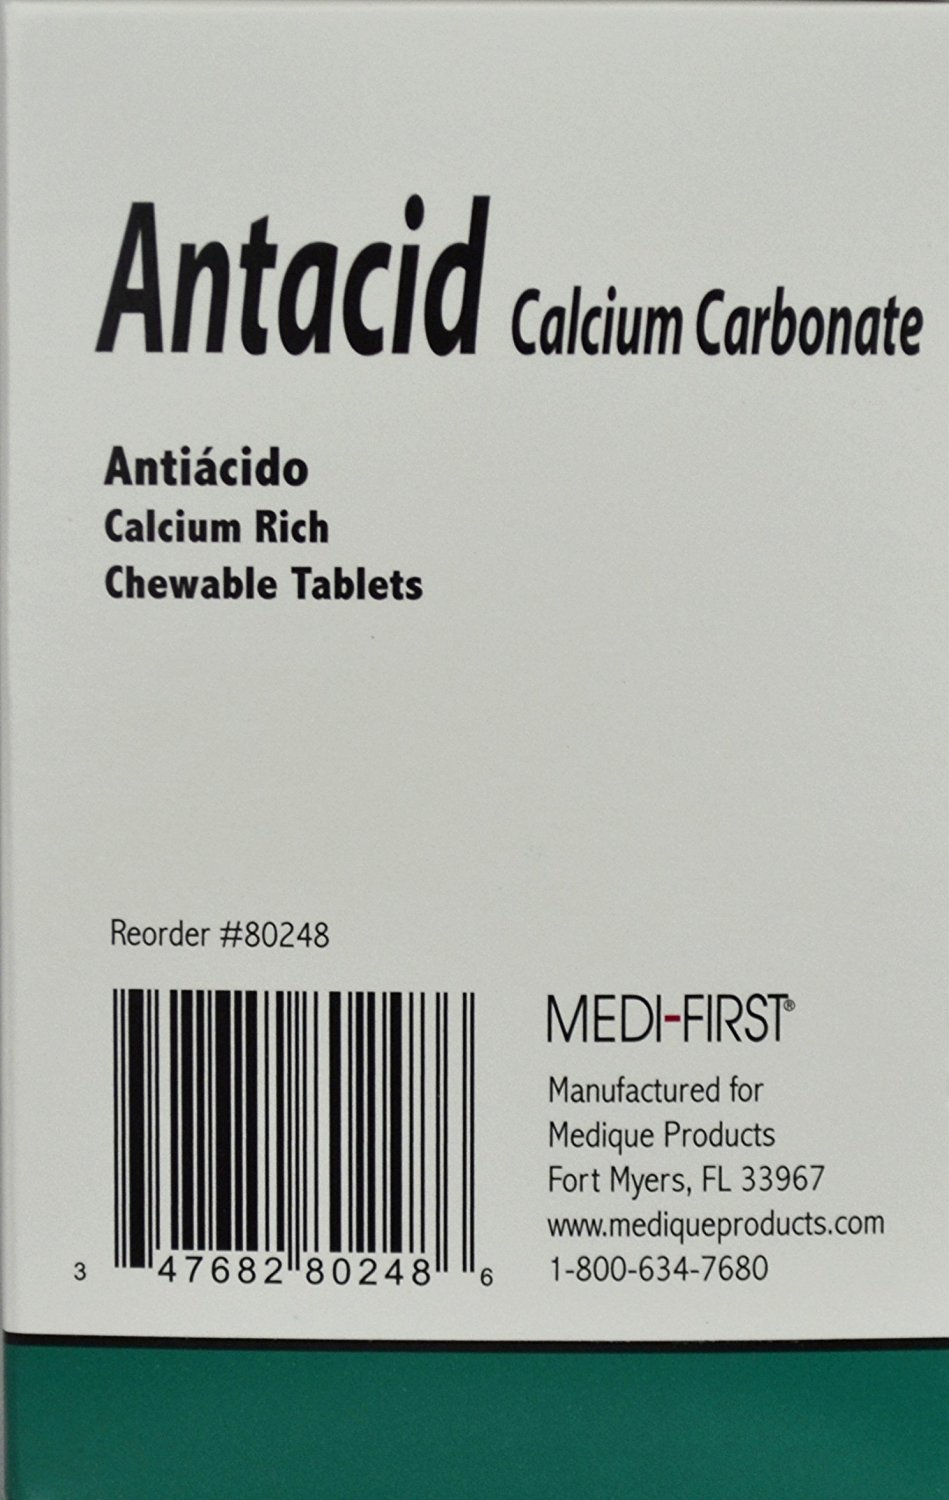 Amazon.com: Medi-First Antacid 420mg Tablets - 1/Box of 250 (125x2): Health & Personal Care